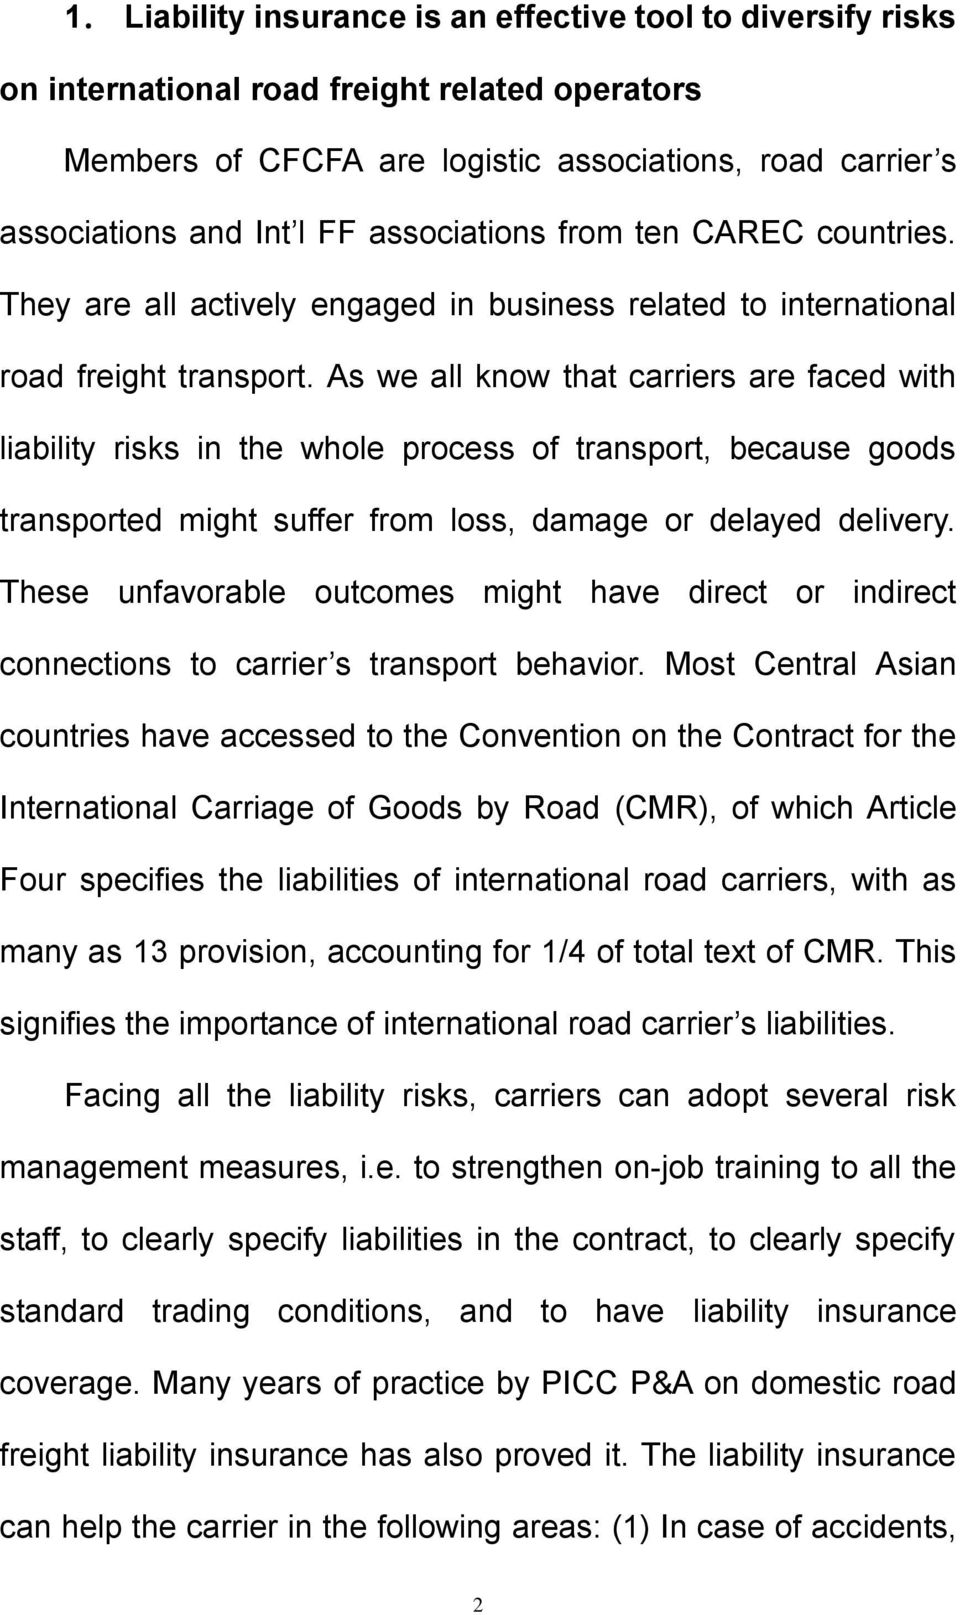 As we all know that carriers are faced with liability risks in the whole process of transport, because goods transported might suffer from loss, damage or delayed delivery.